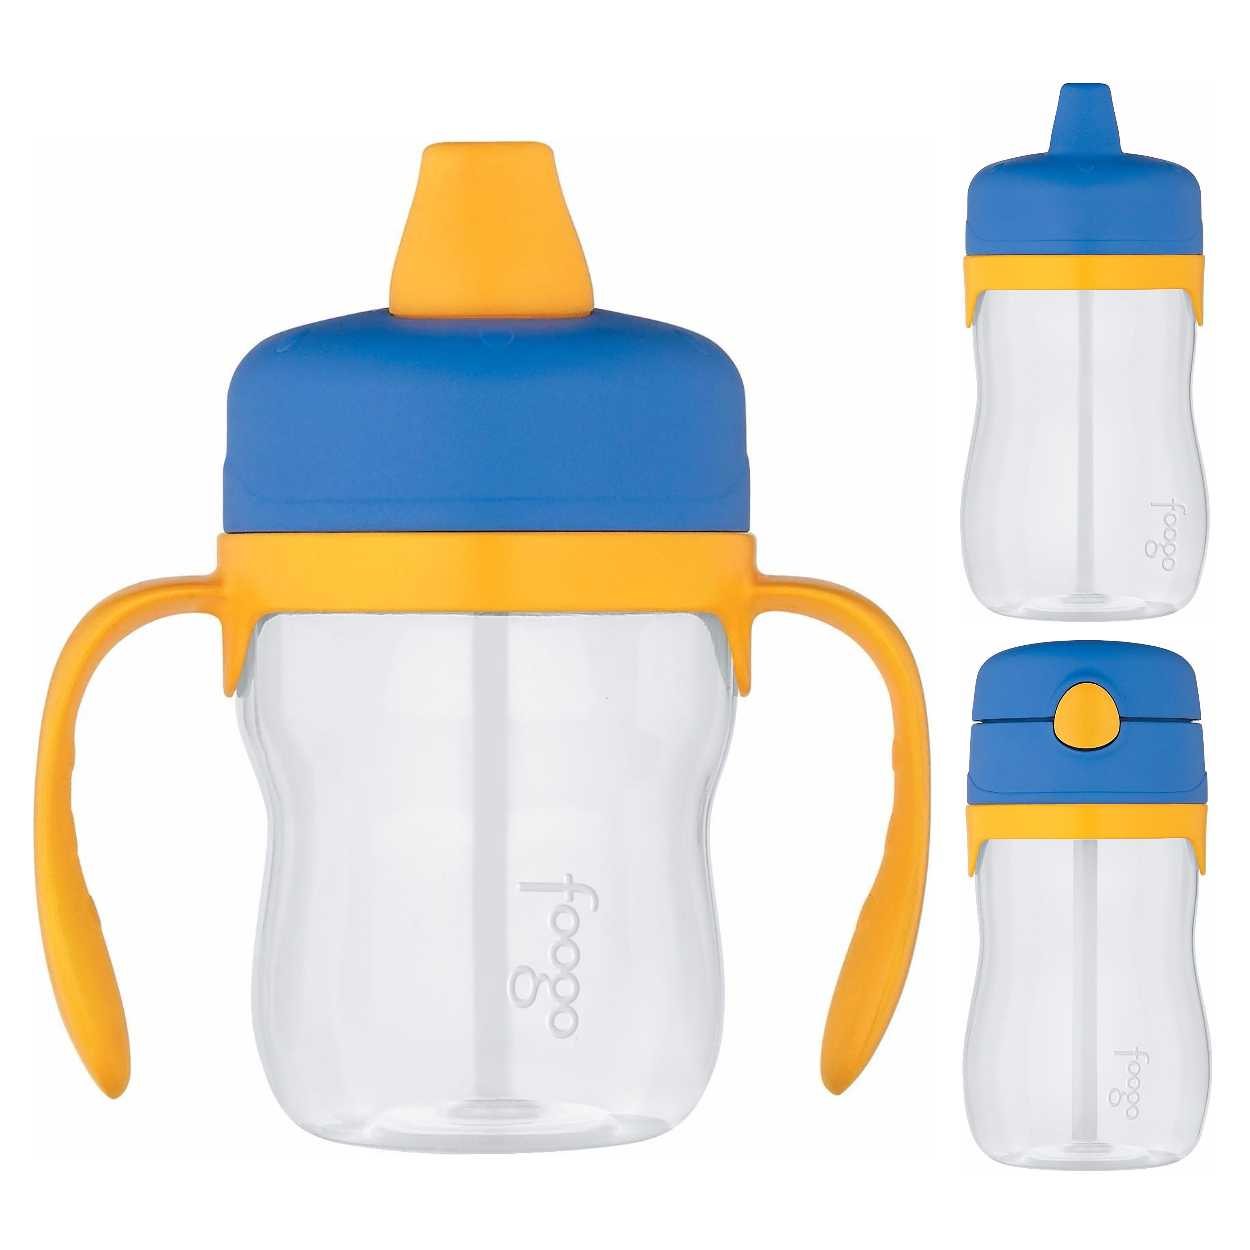 Thermos Foogo 8oz & 11oz Sippy Cups w/ 11oz Straw Bottle (Blue/Yellow)